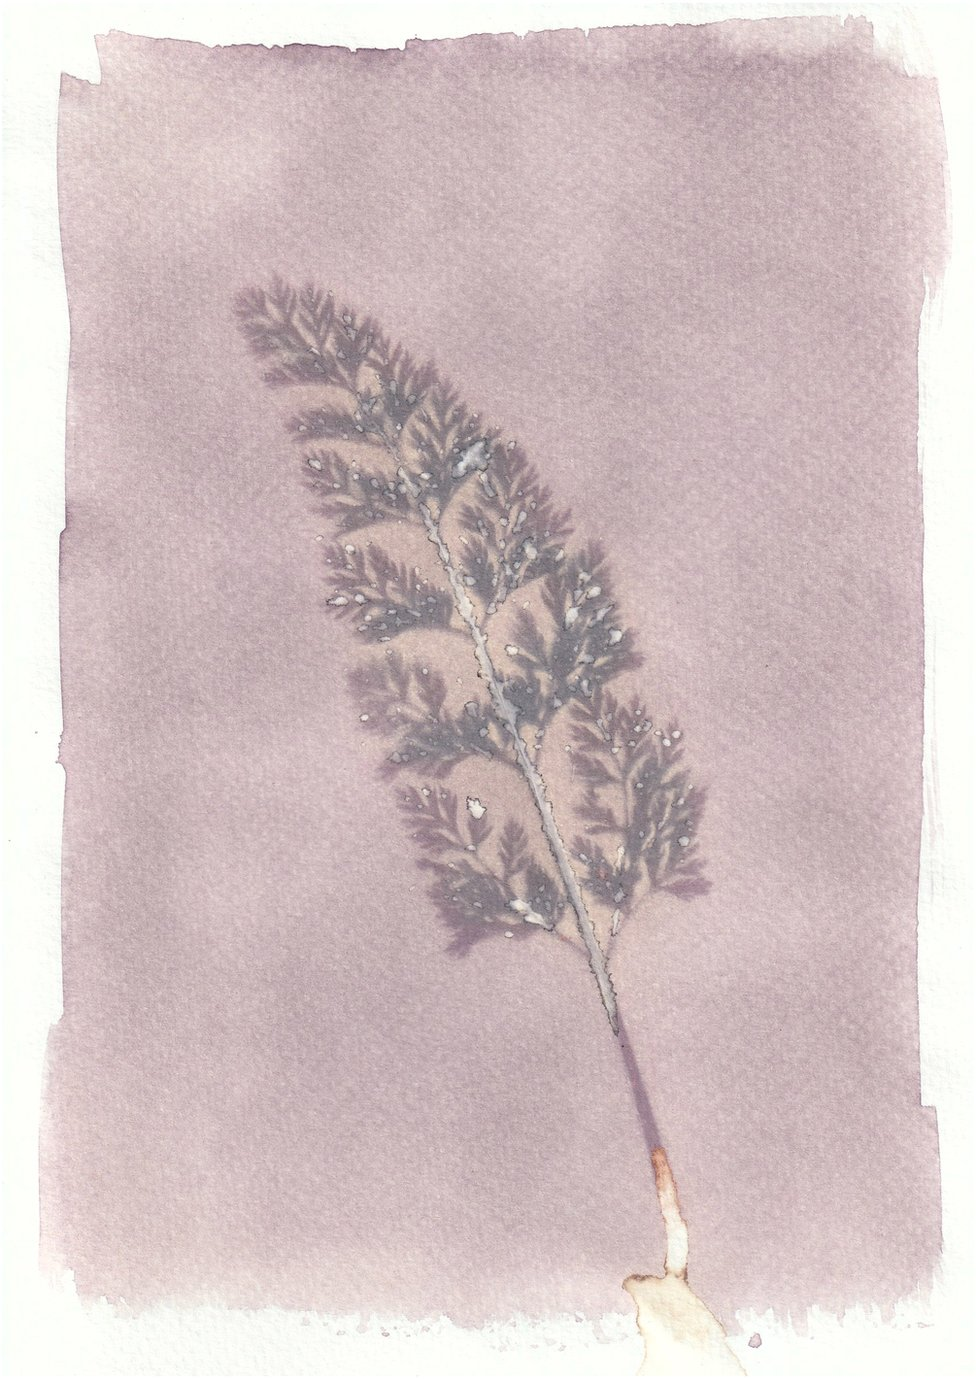 An anthotype print of a purple piece of plant foliage